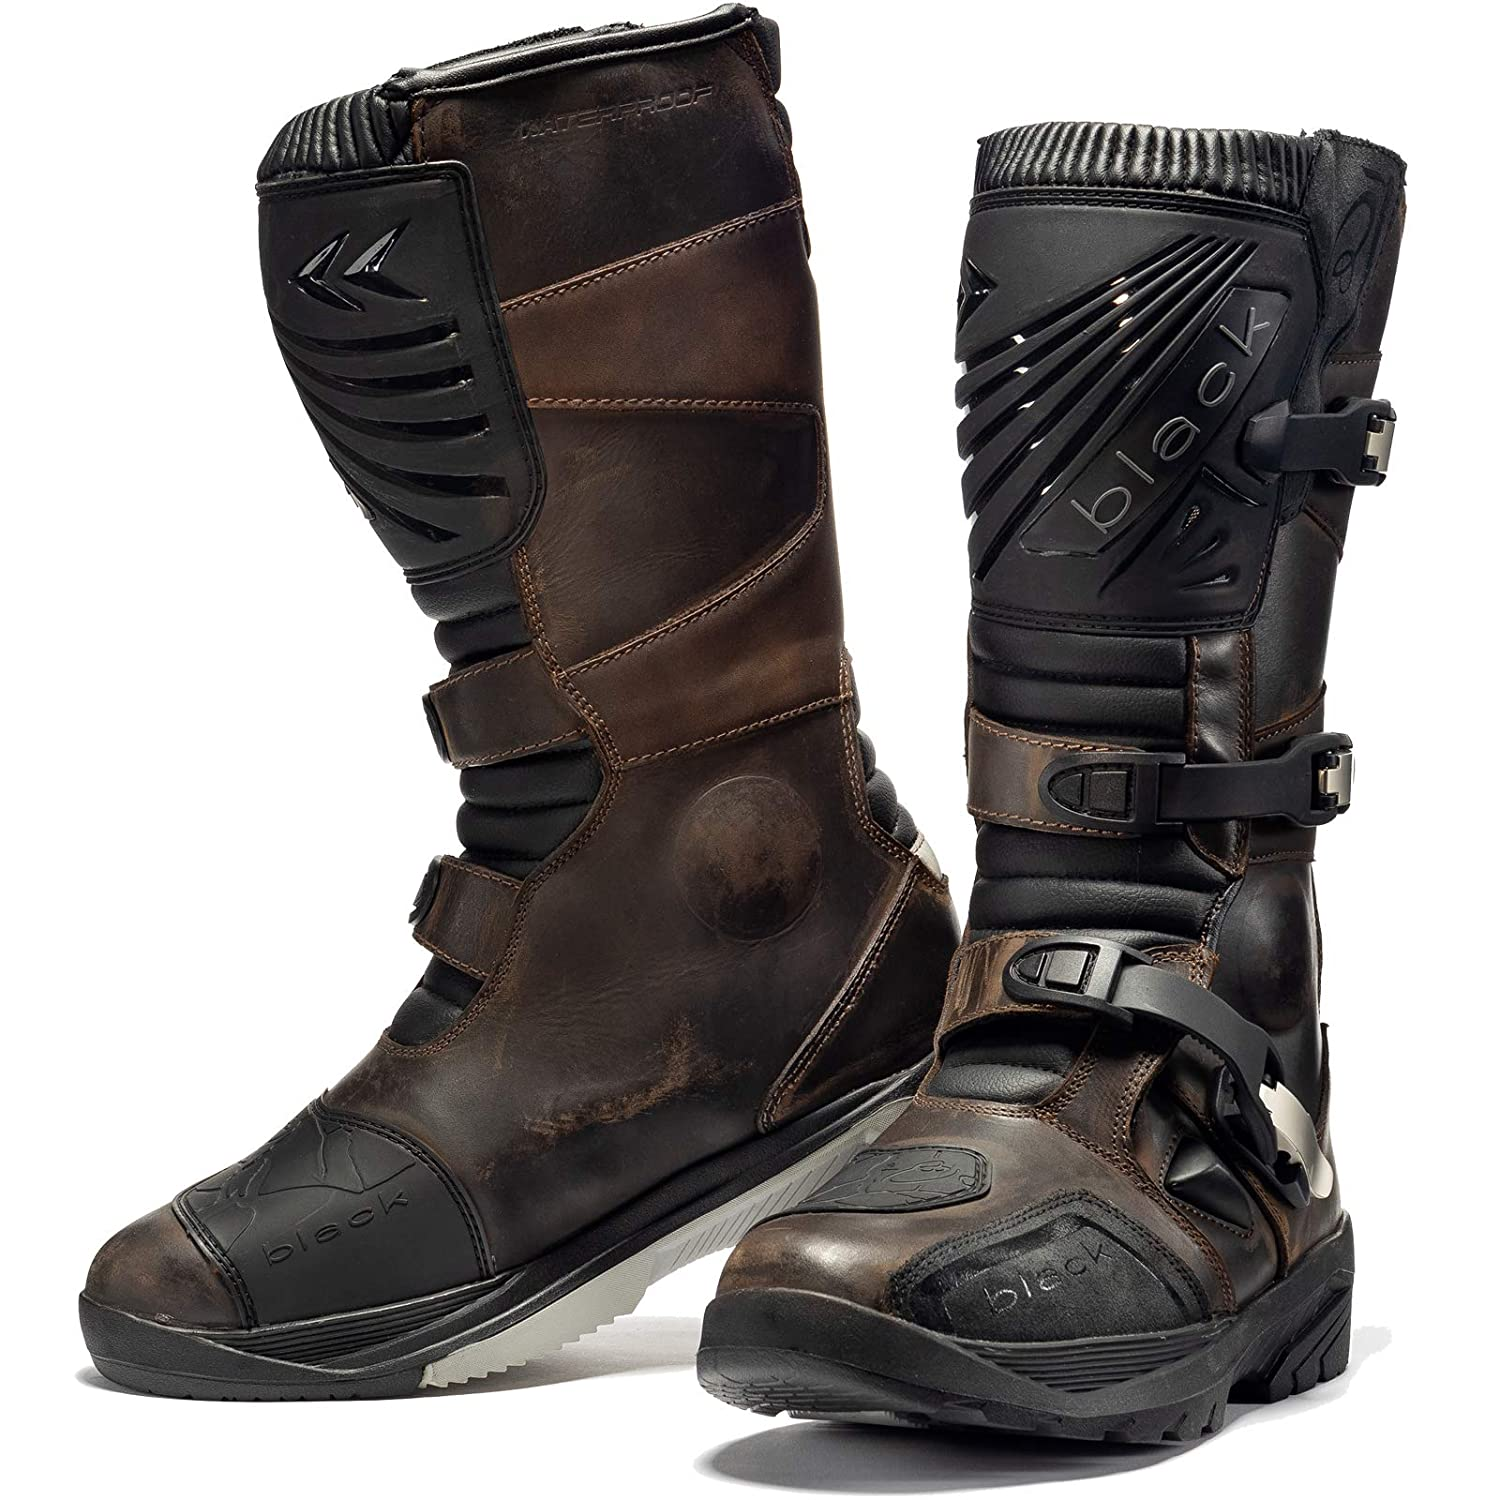 Black Rebel Adventure WP Motorcycle Boots